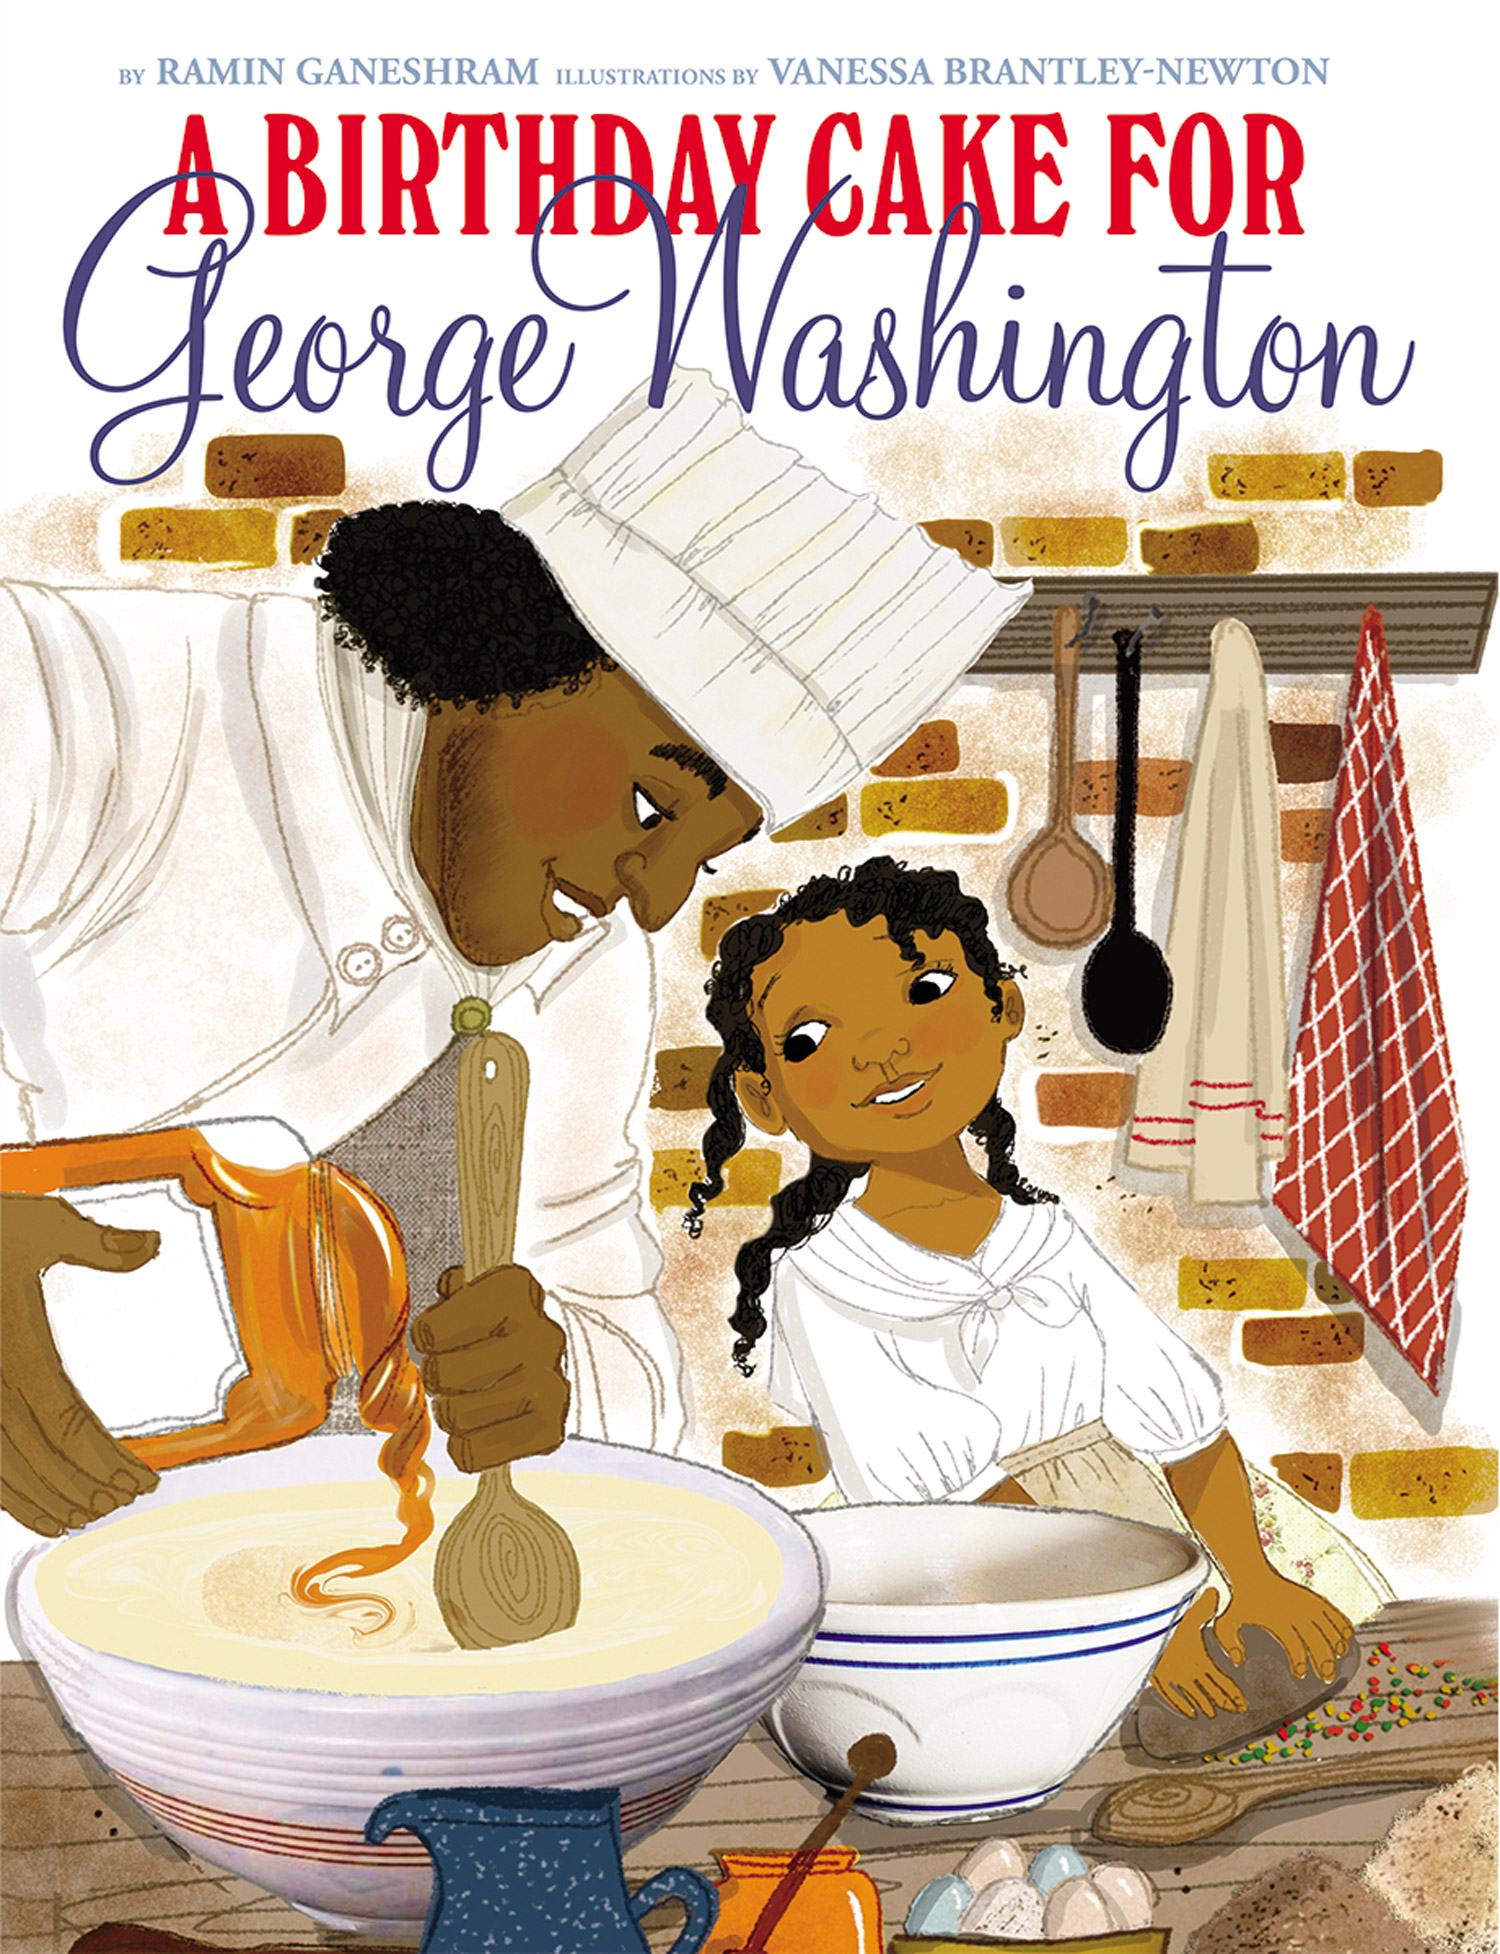 The cover of the book  A Birthday Cake for George Washington  by Ramin Ganeshram.